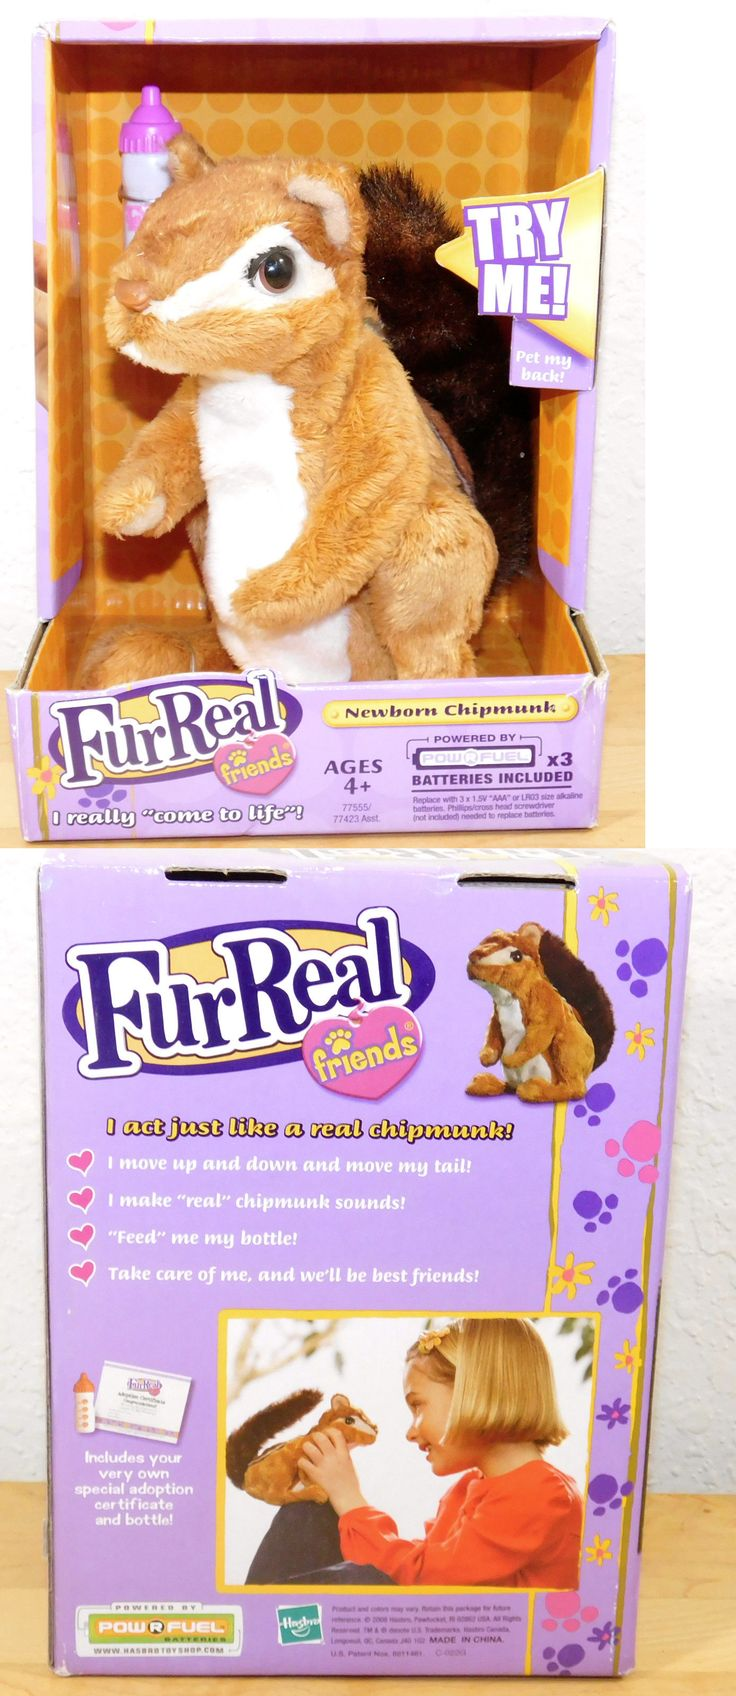 FurReal Friends 38288: 2008 Furreal Friends Newborn Chipmunk Interactive Forest Animal Hasbro New -> BUY IT NOW ONLY: $33.95 on eBay!